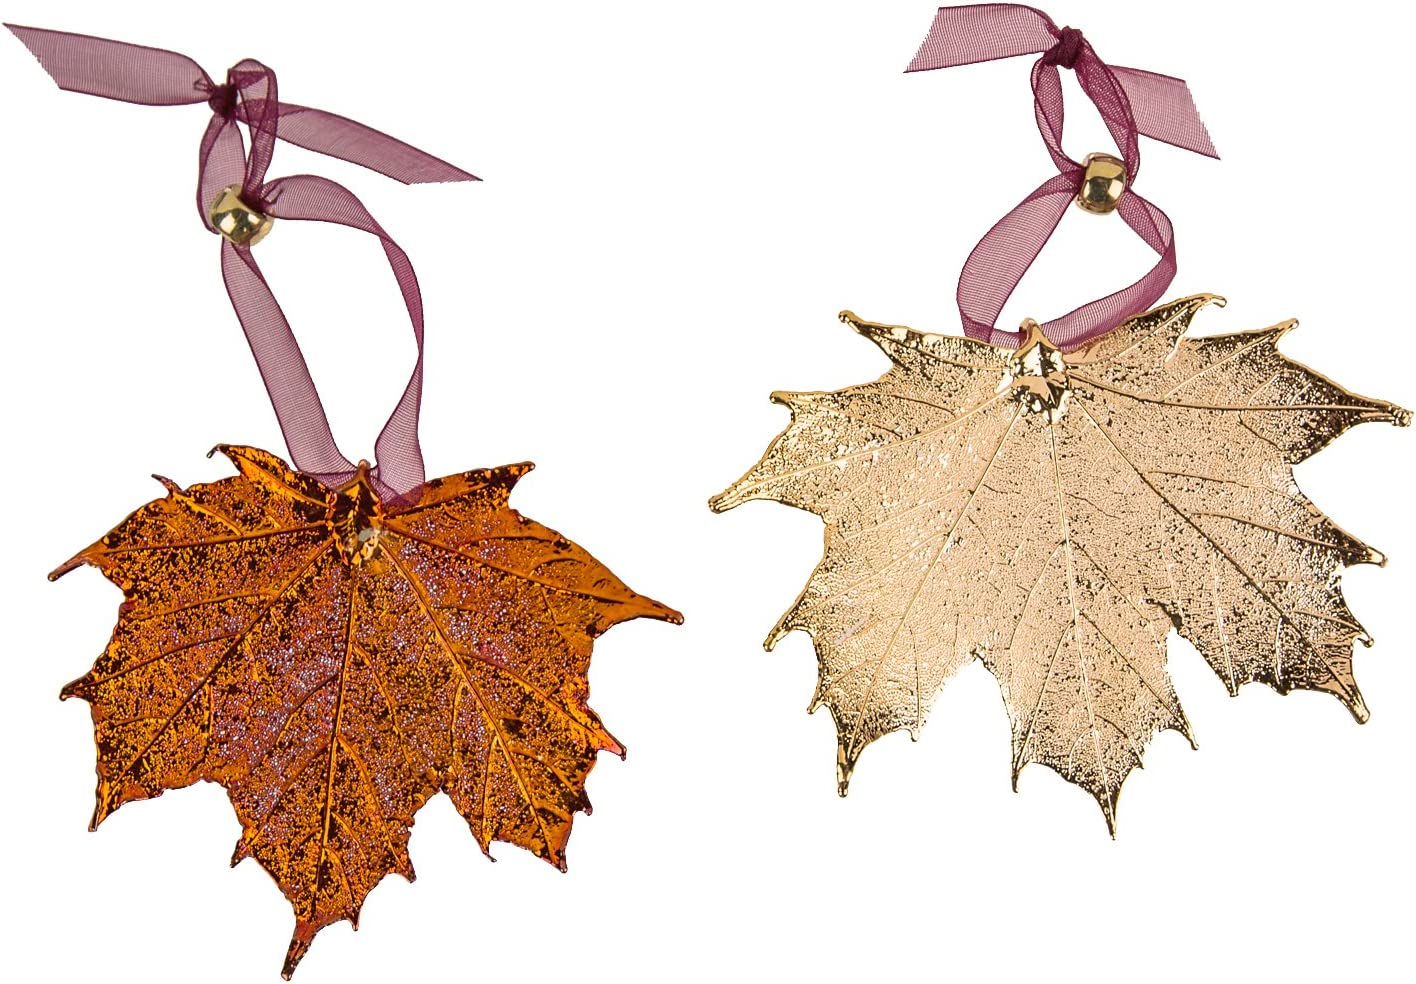 Clip-ons Hooks or Lever Backs Iridescent Green and Antiqued Copper Autumn Maple Leaf Charm Earrings